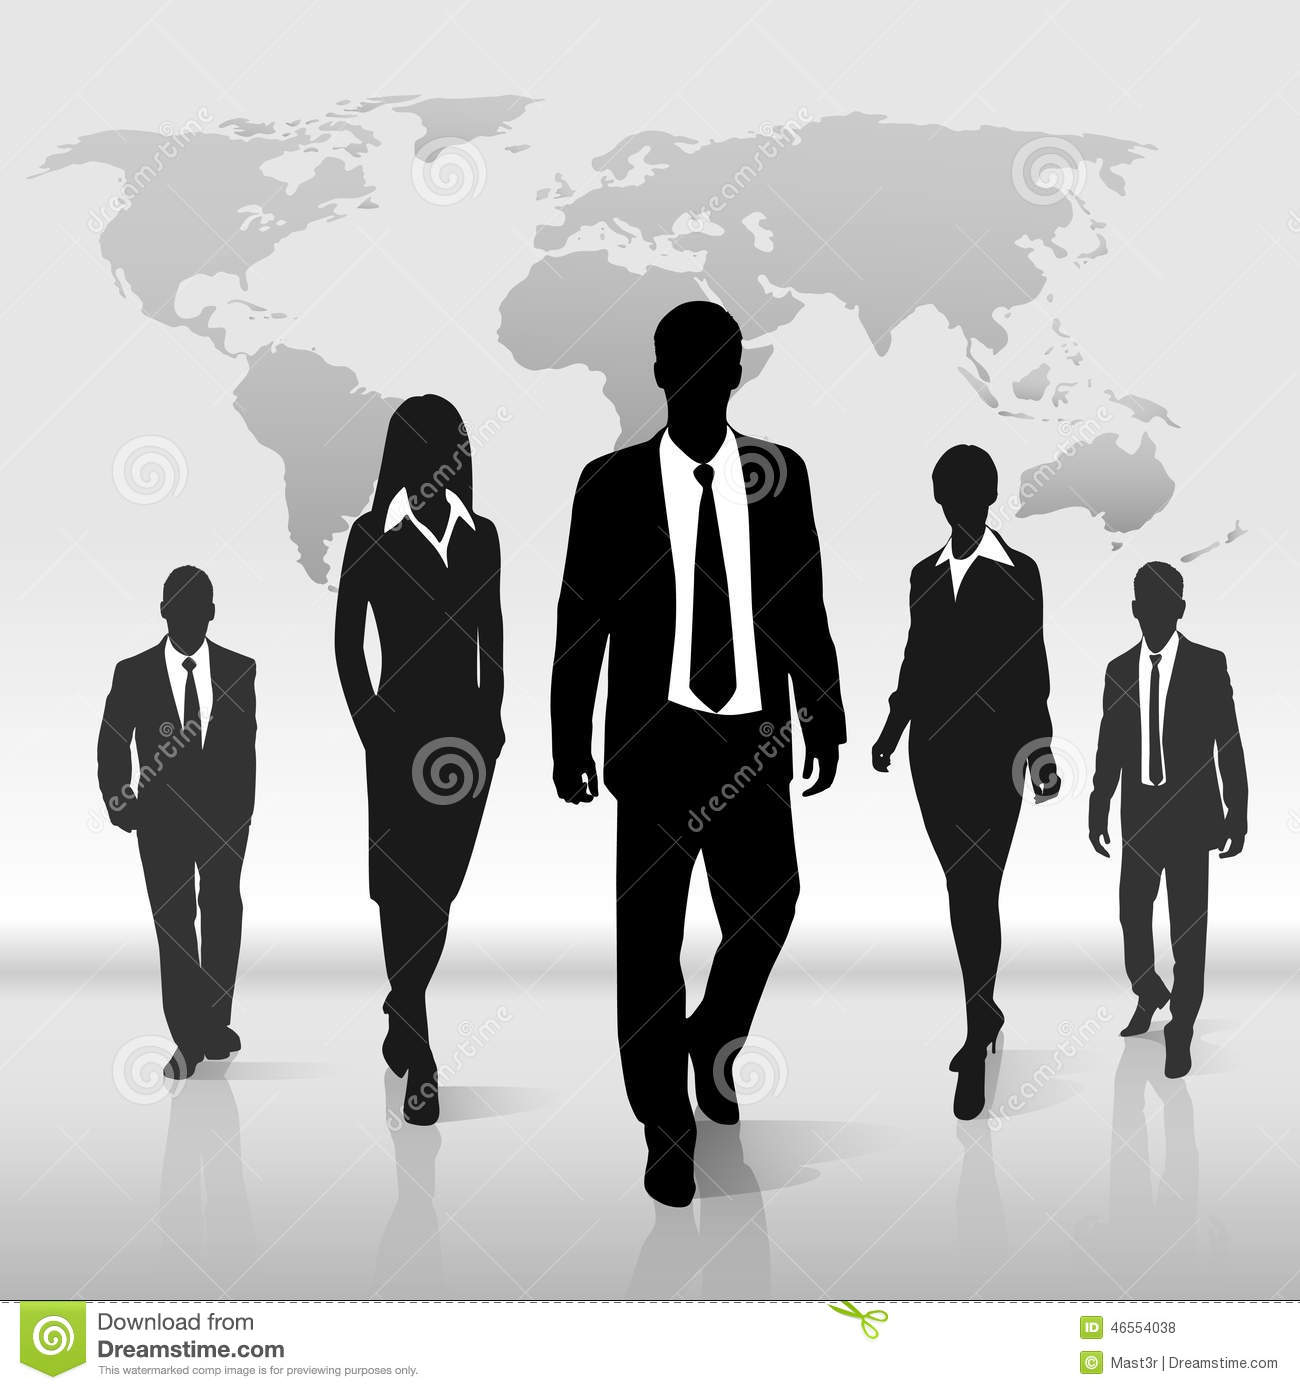 Free Images Black And White People Crowd Statue: Business People Group Walk Silhouette Over World Stock